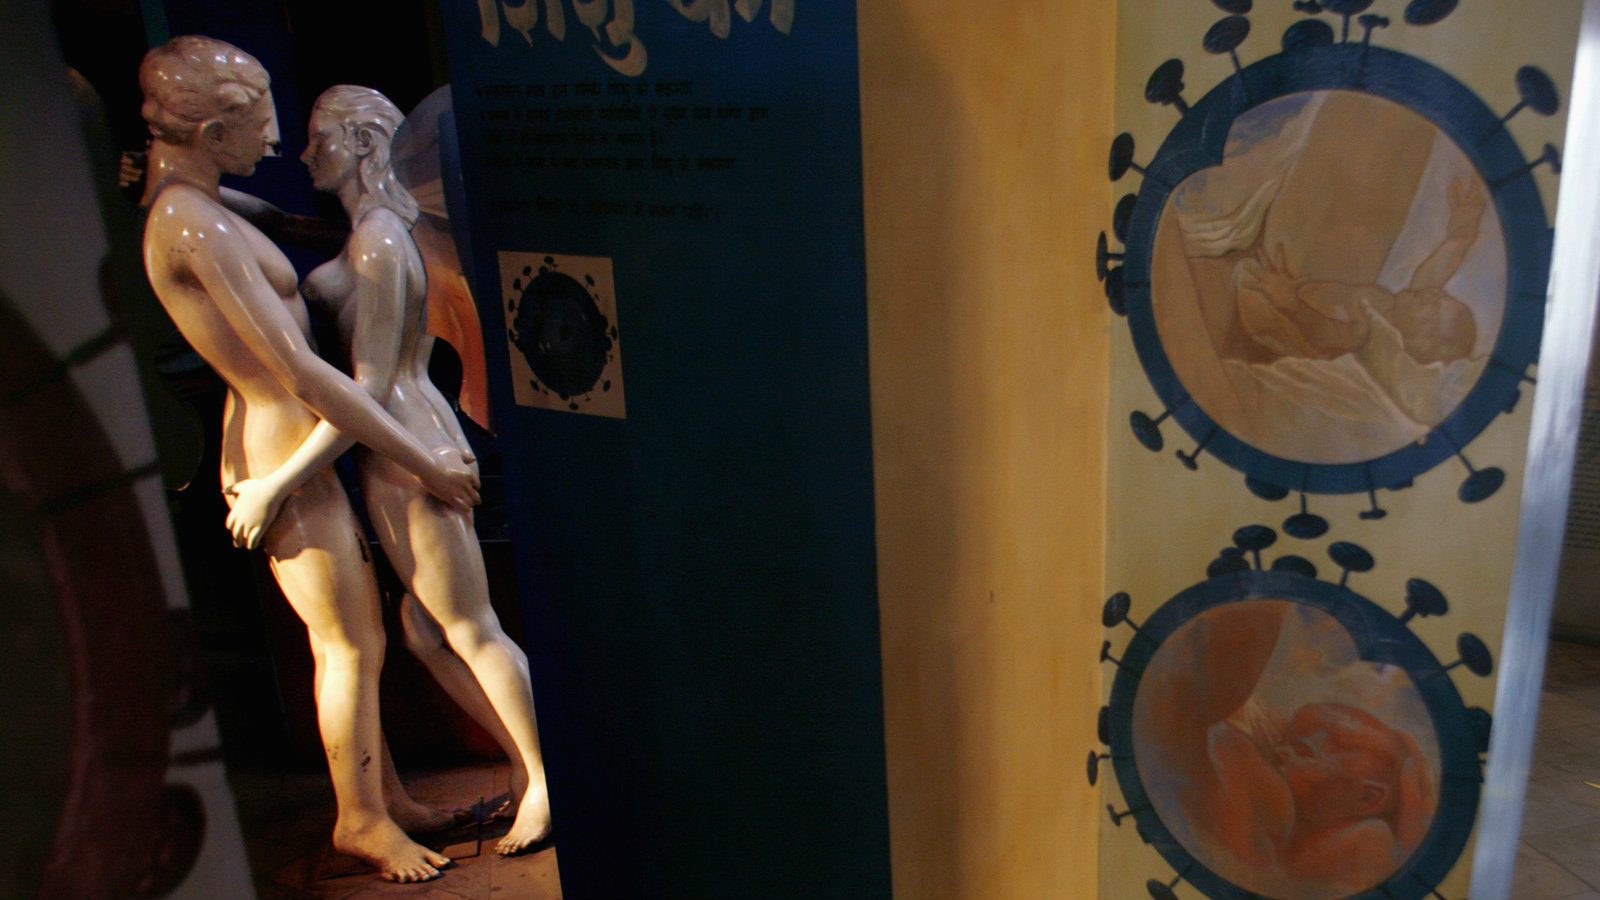 A man walks past an exhibit in the Sexual Health Information Art Gallery in Mumbai January 29, 2007.